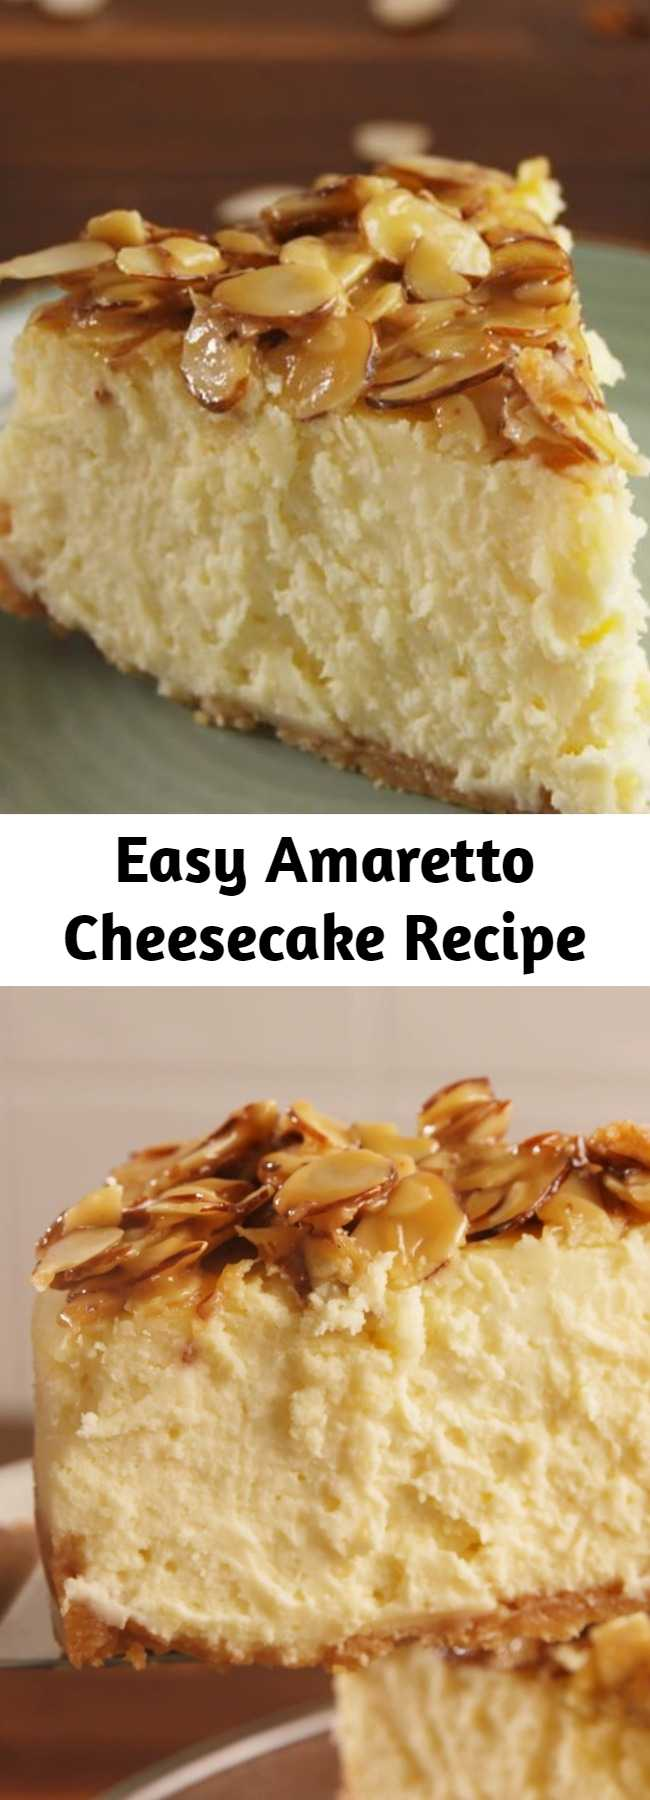 Easy Amaretto Cheesecake Recipe - If you love almonds, you need this cheesecake. This is the perfect pairing. #easy #recipe #amaretto #almond #cheesecake #dessert #vanilla